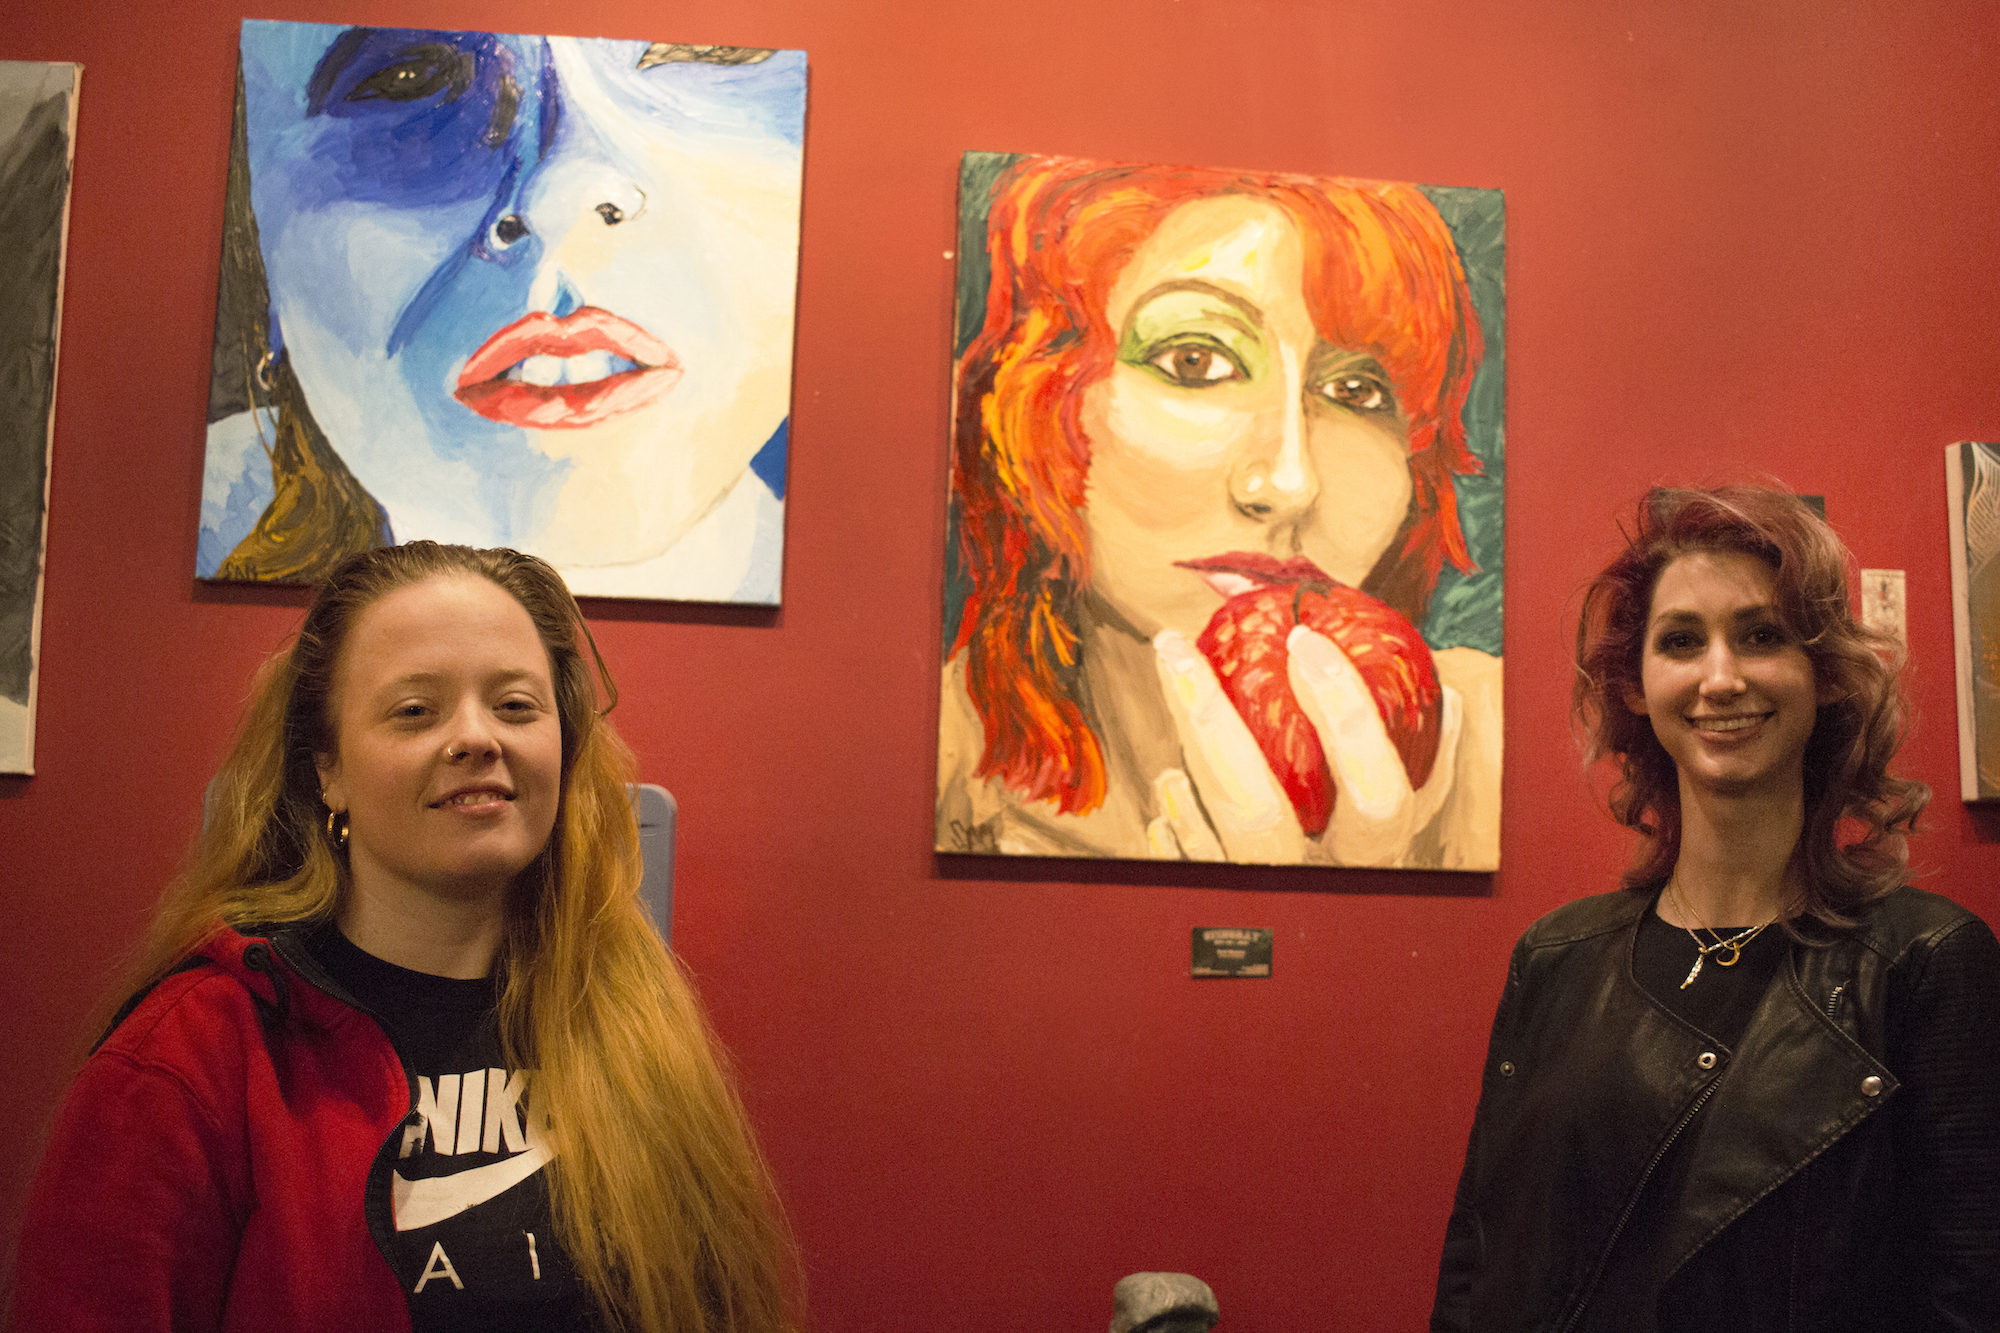 Melissa and Geena Matuson, stand before 'their paintings' by Scott Matalon at The Stingray Body Art Tattoo Artist Art Show, March 2016.